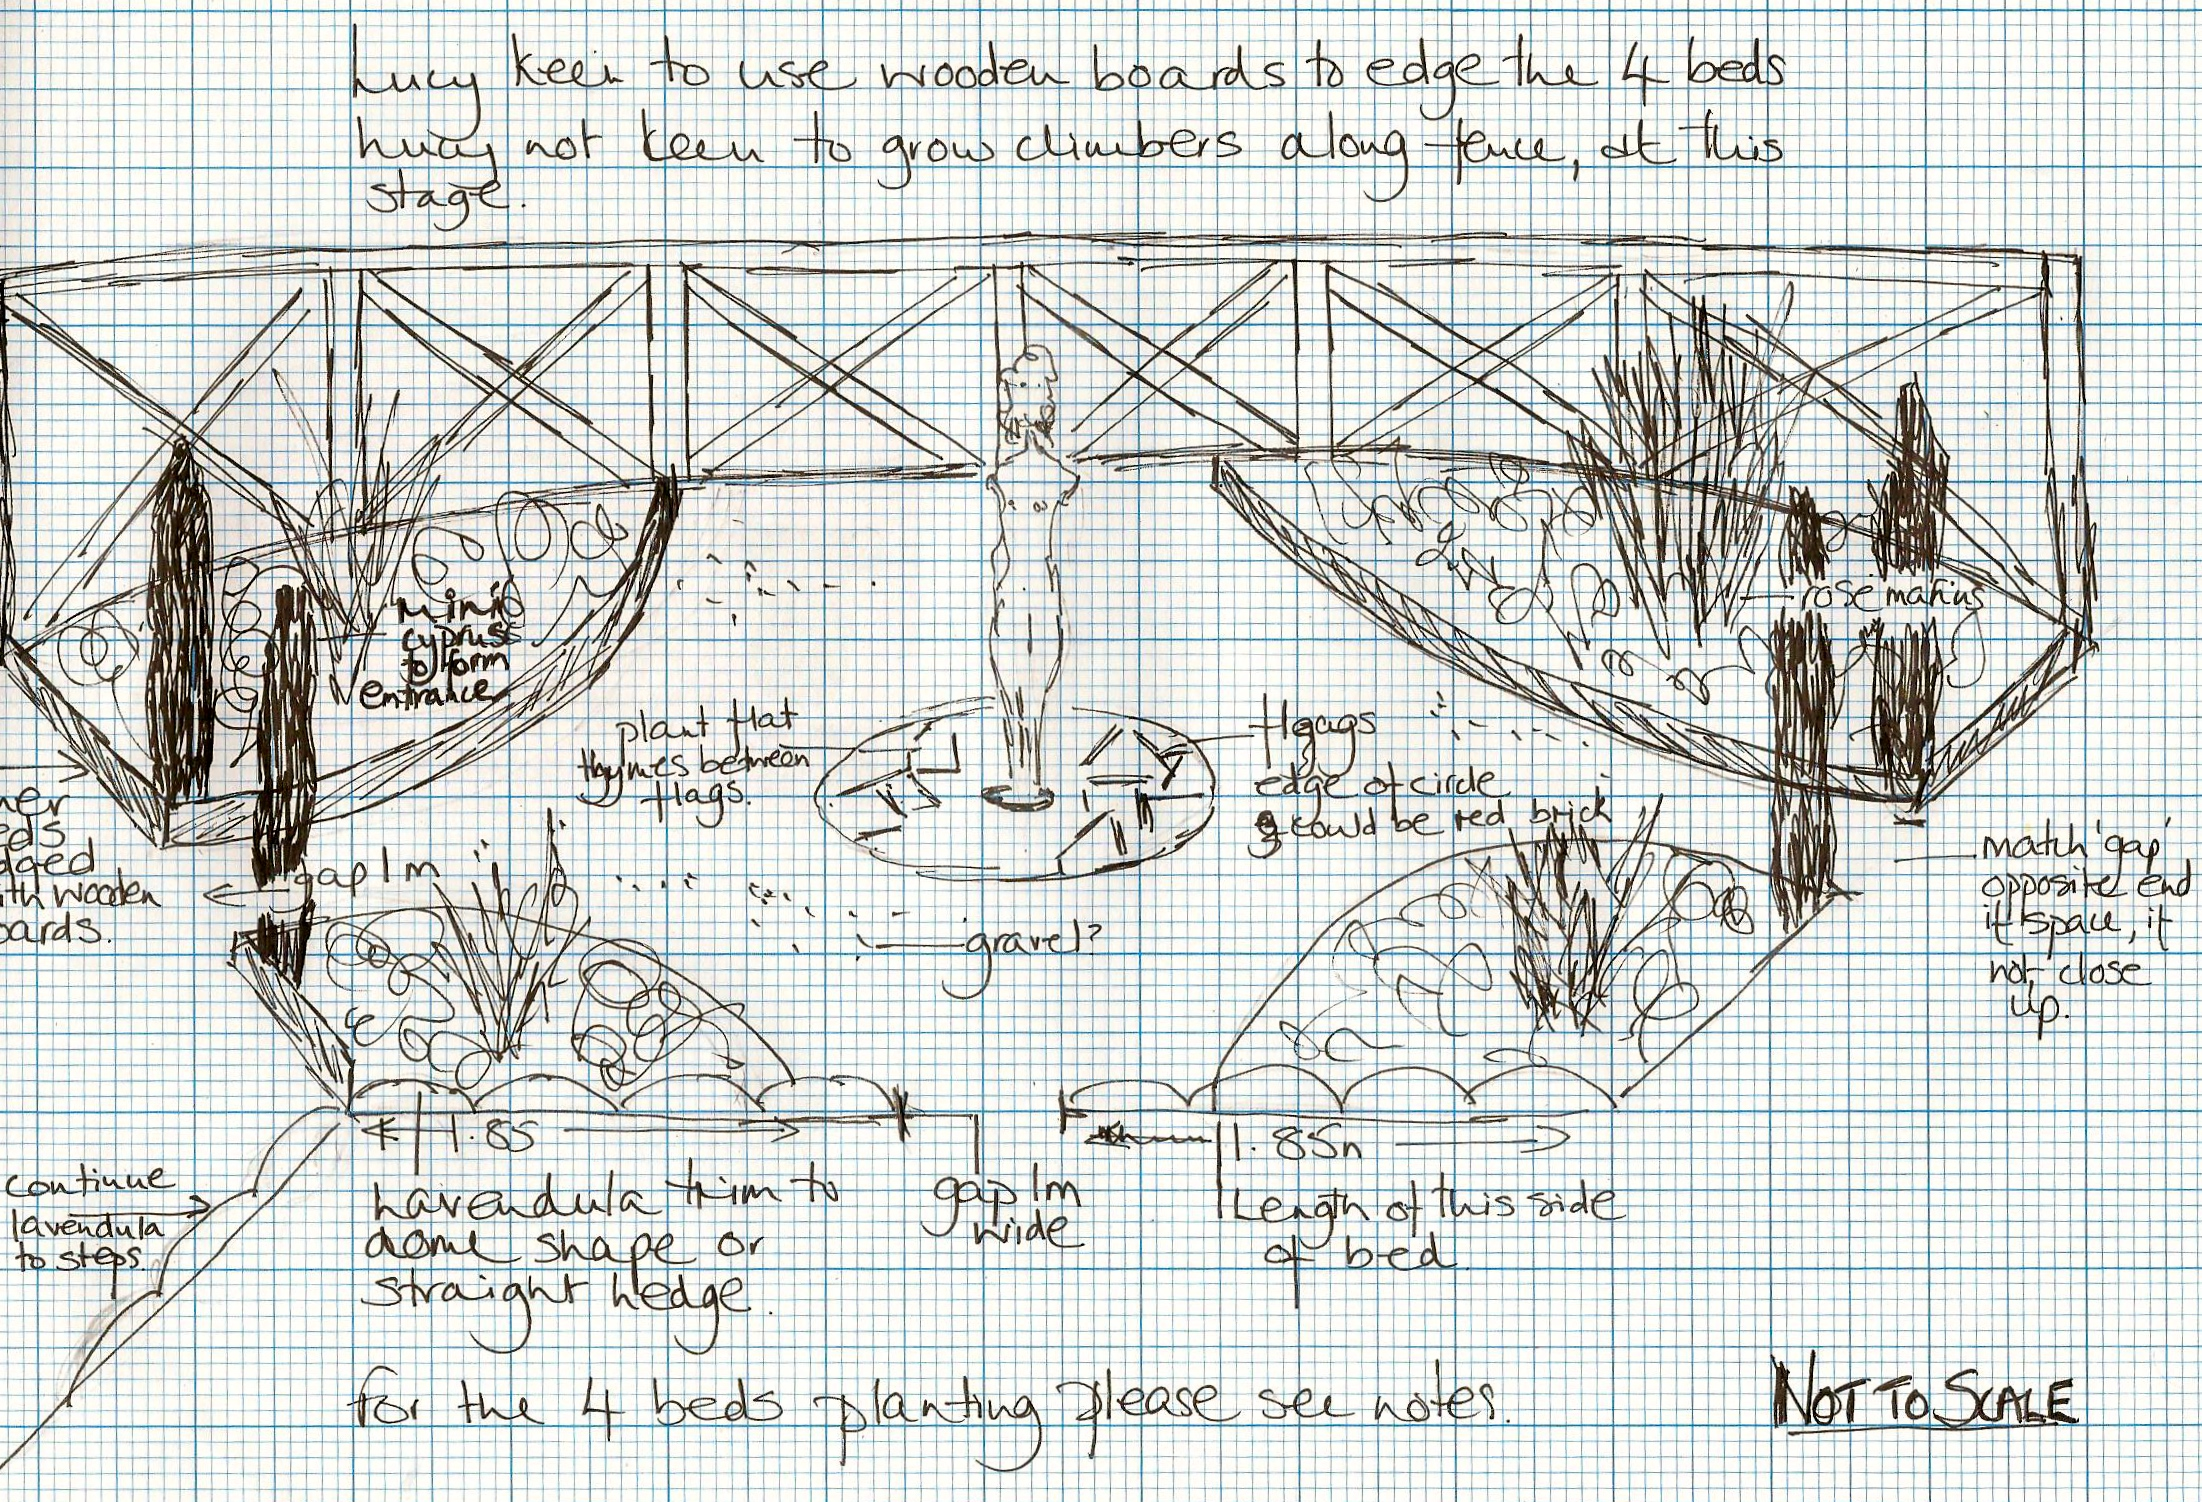 Quick sketch from the landscape architect for the formal garden at Biancan…